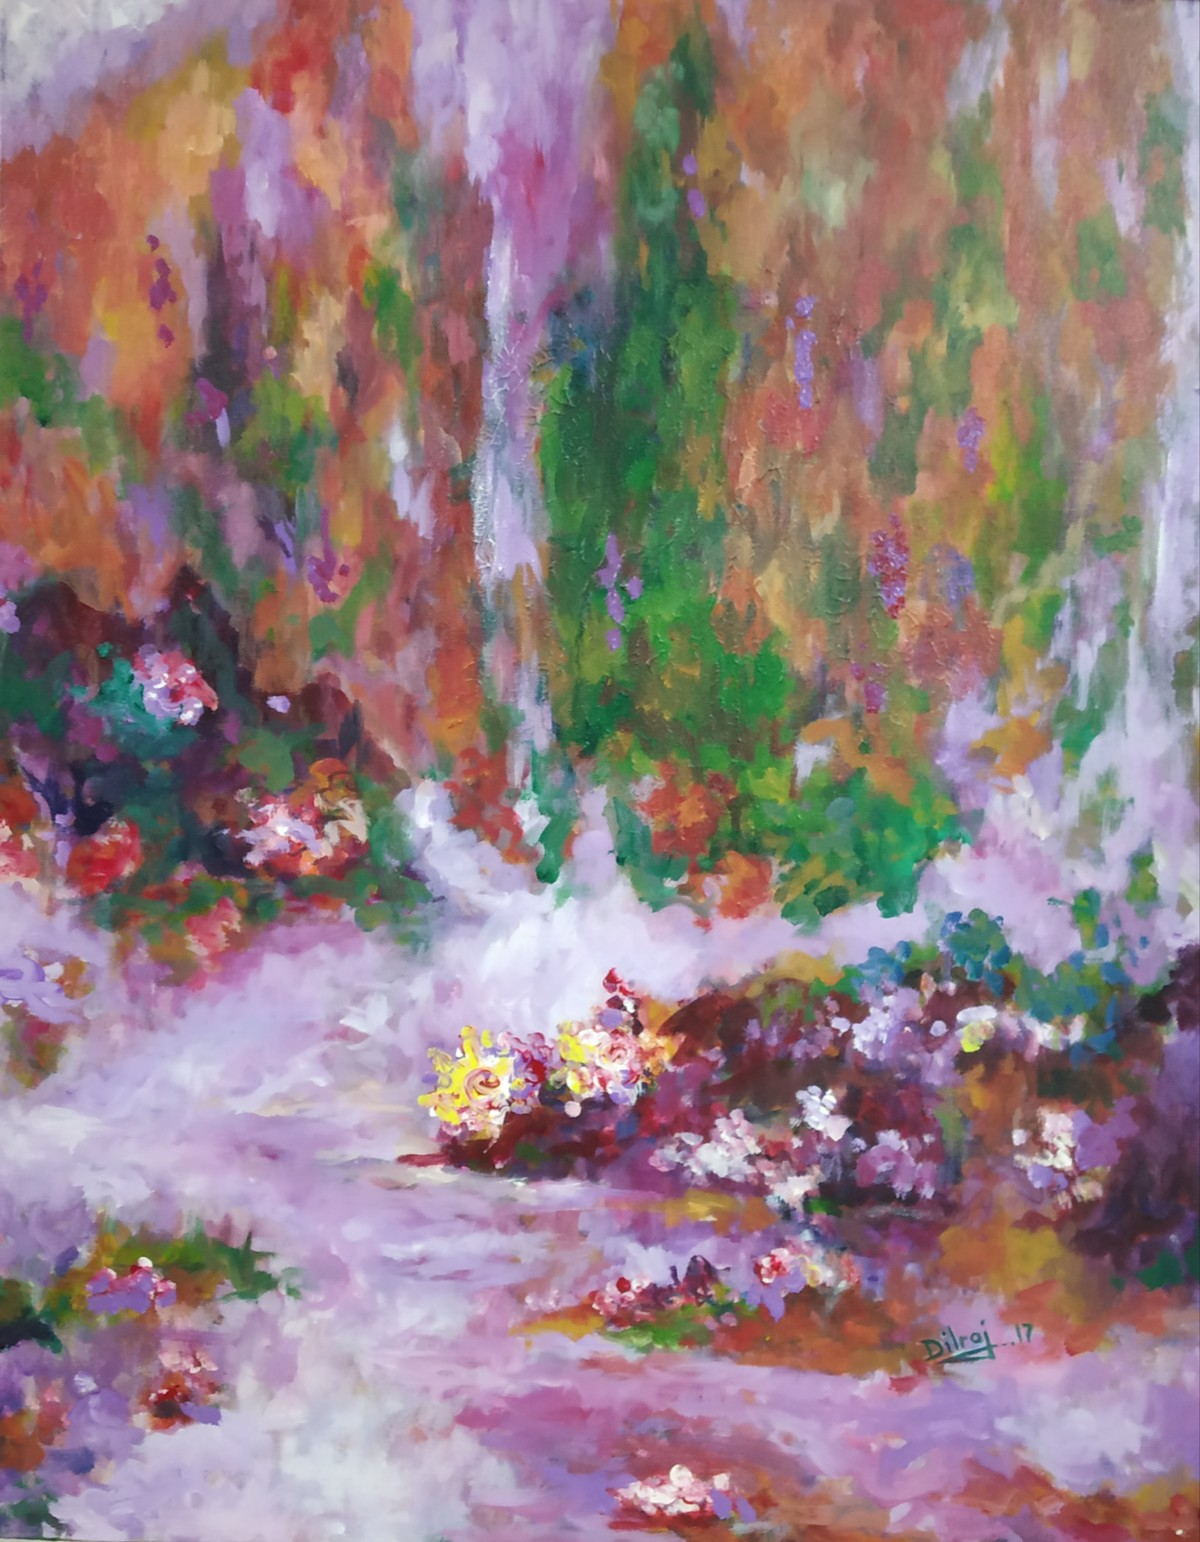 Misty garden by dilraj kaur, Abstract Painting, Acrylic on Canvas, Brown color